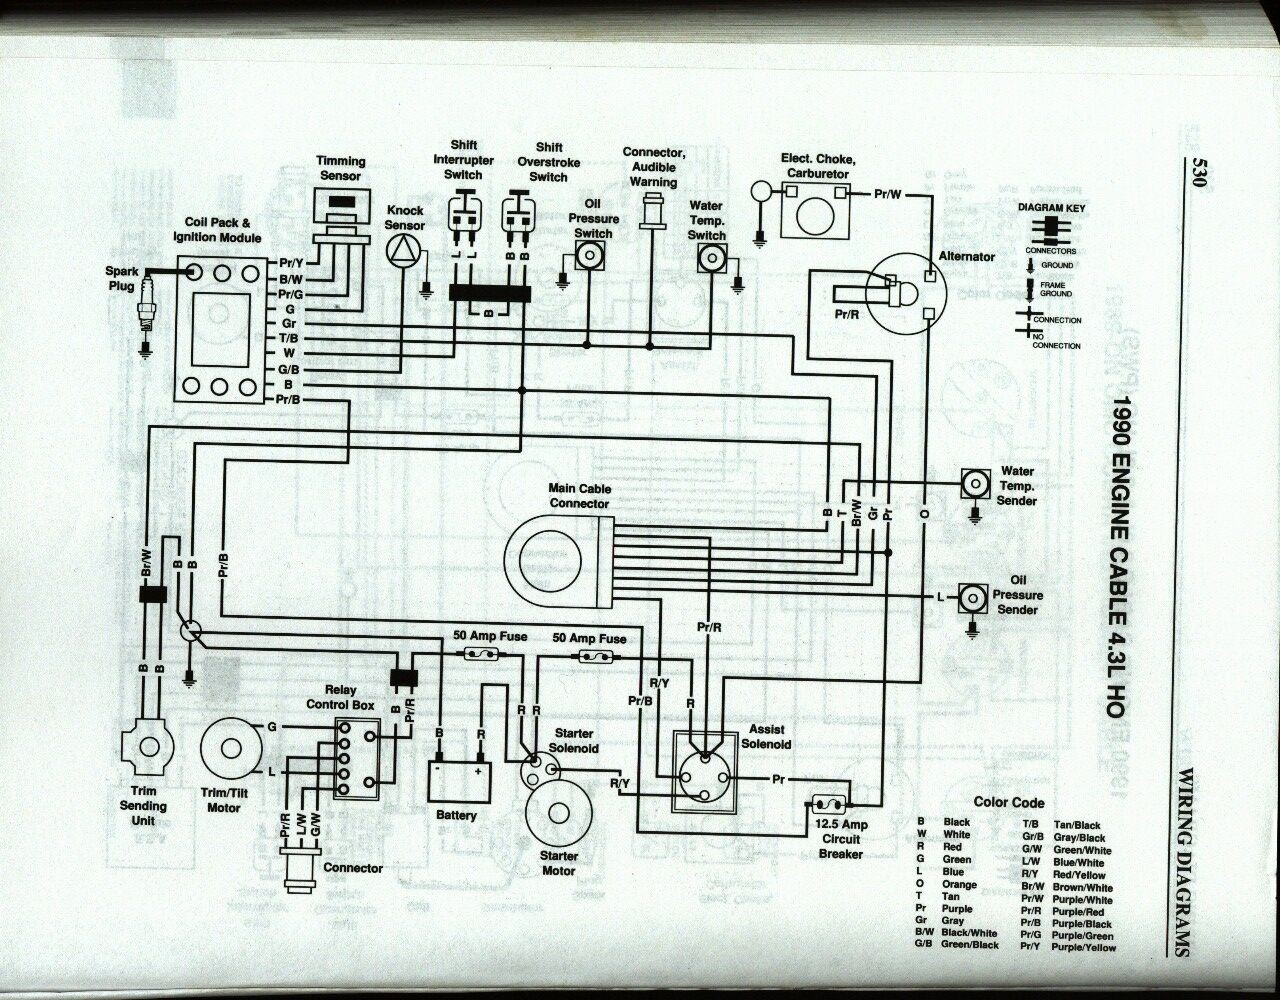 Wiring Diagram For Omc Cobra Auto Electrical 2003 Fuse 4 3l Ho Problems Page 3